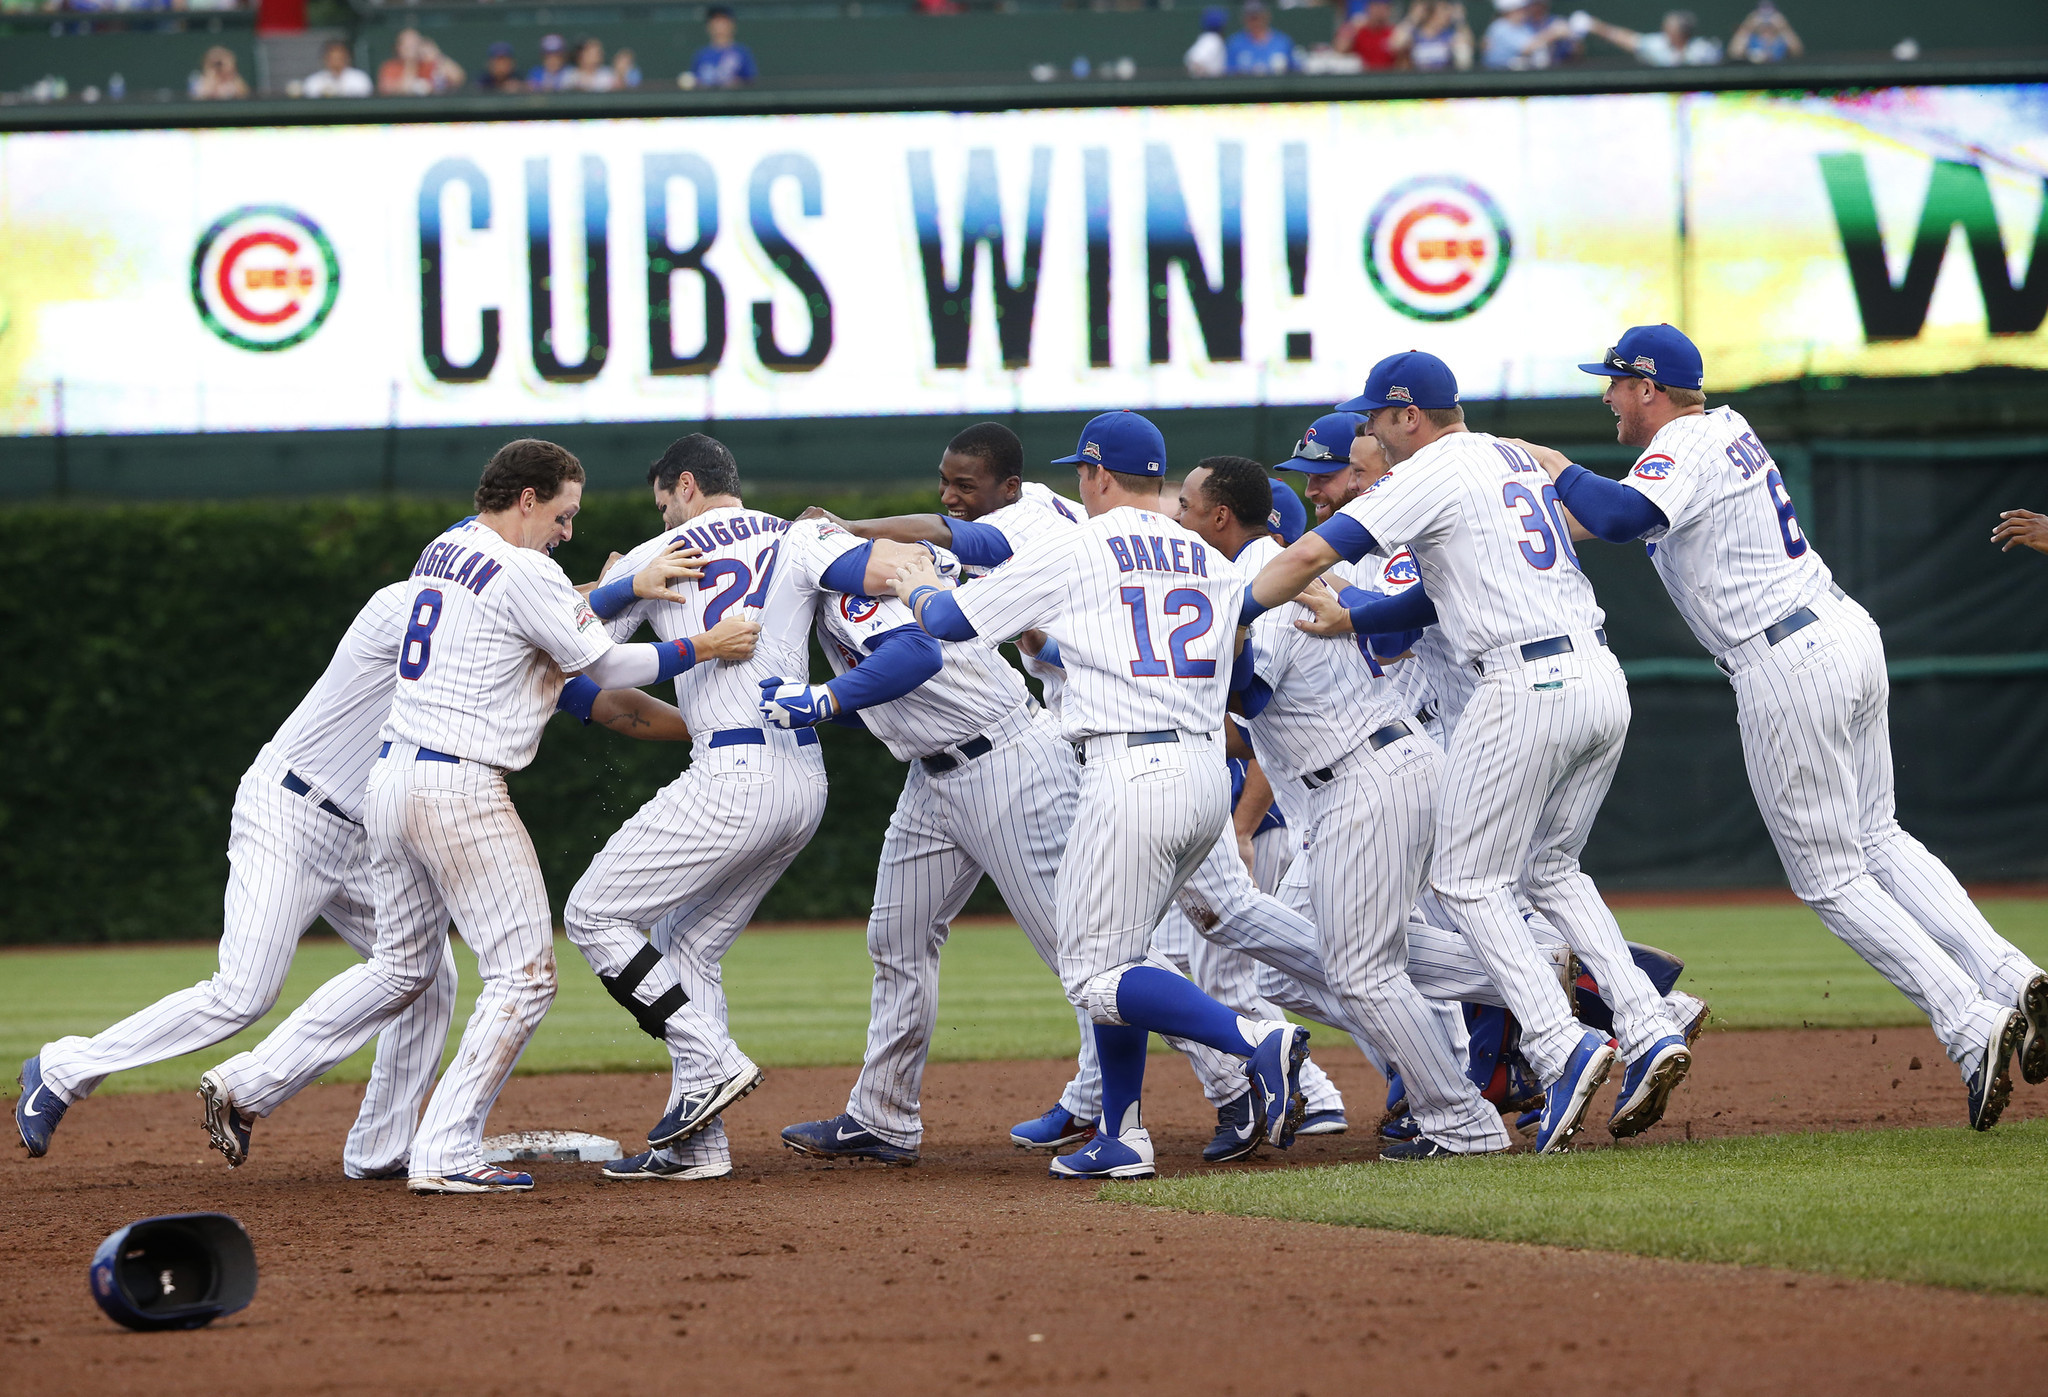 Go Song Go Picking The Next Cubs Hit Chicago Tribune